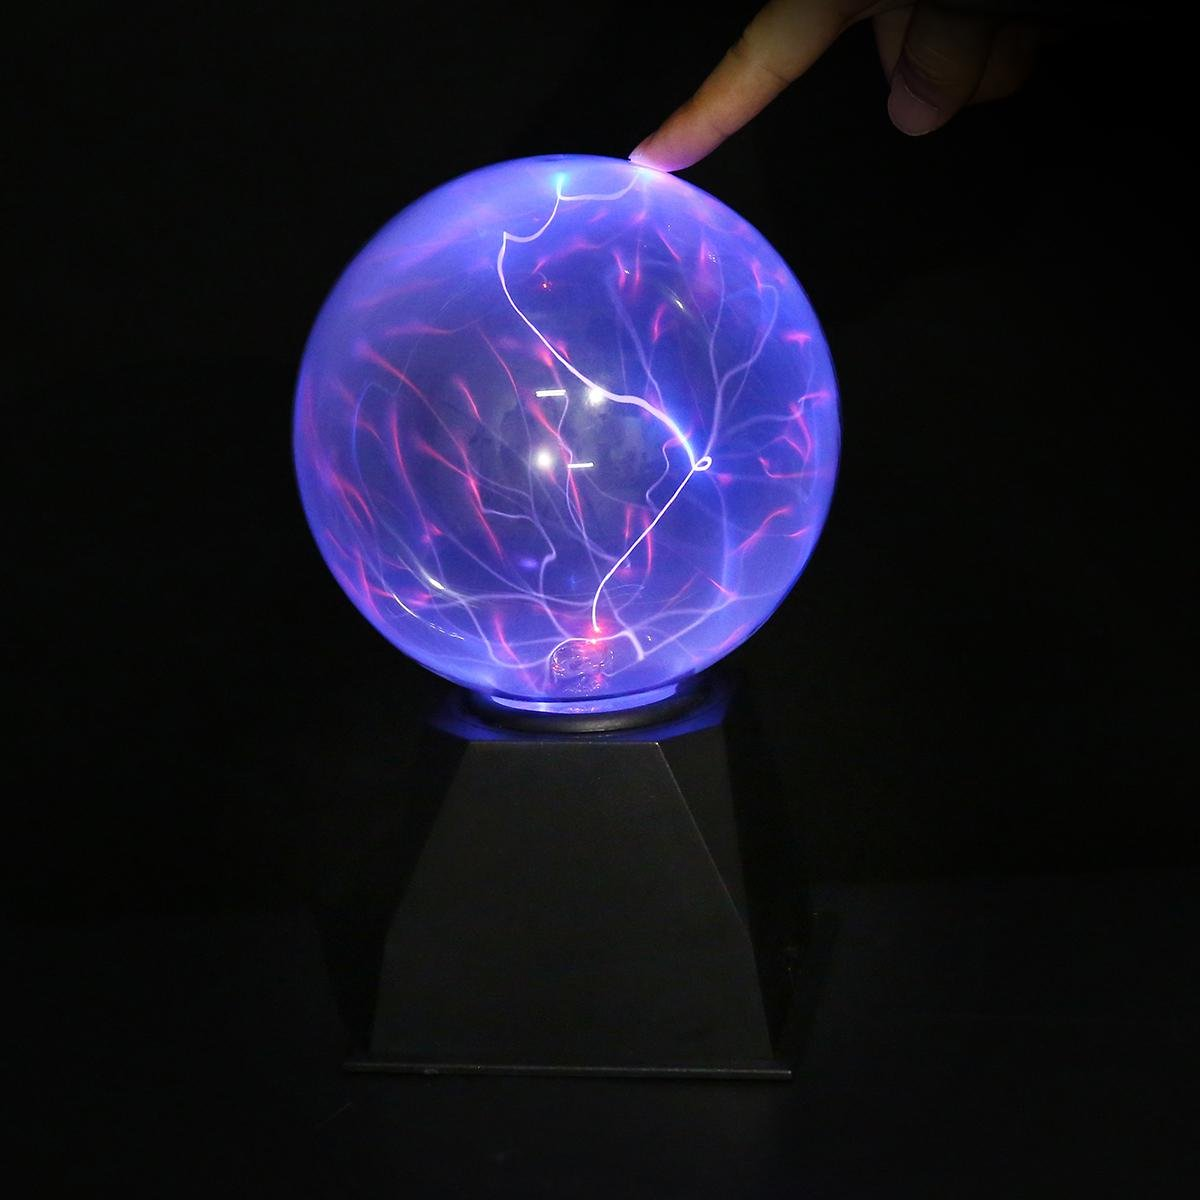 Plasma Ball, Teepao 6 inch [Touch&Sound Sensitive] Plasma Lamp Magic Plasma Globe Thunder Lightning Light Novelty Toy for Kids and Adults, AC/DC Adapter Included